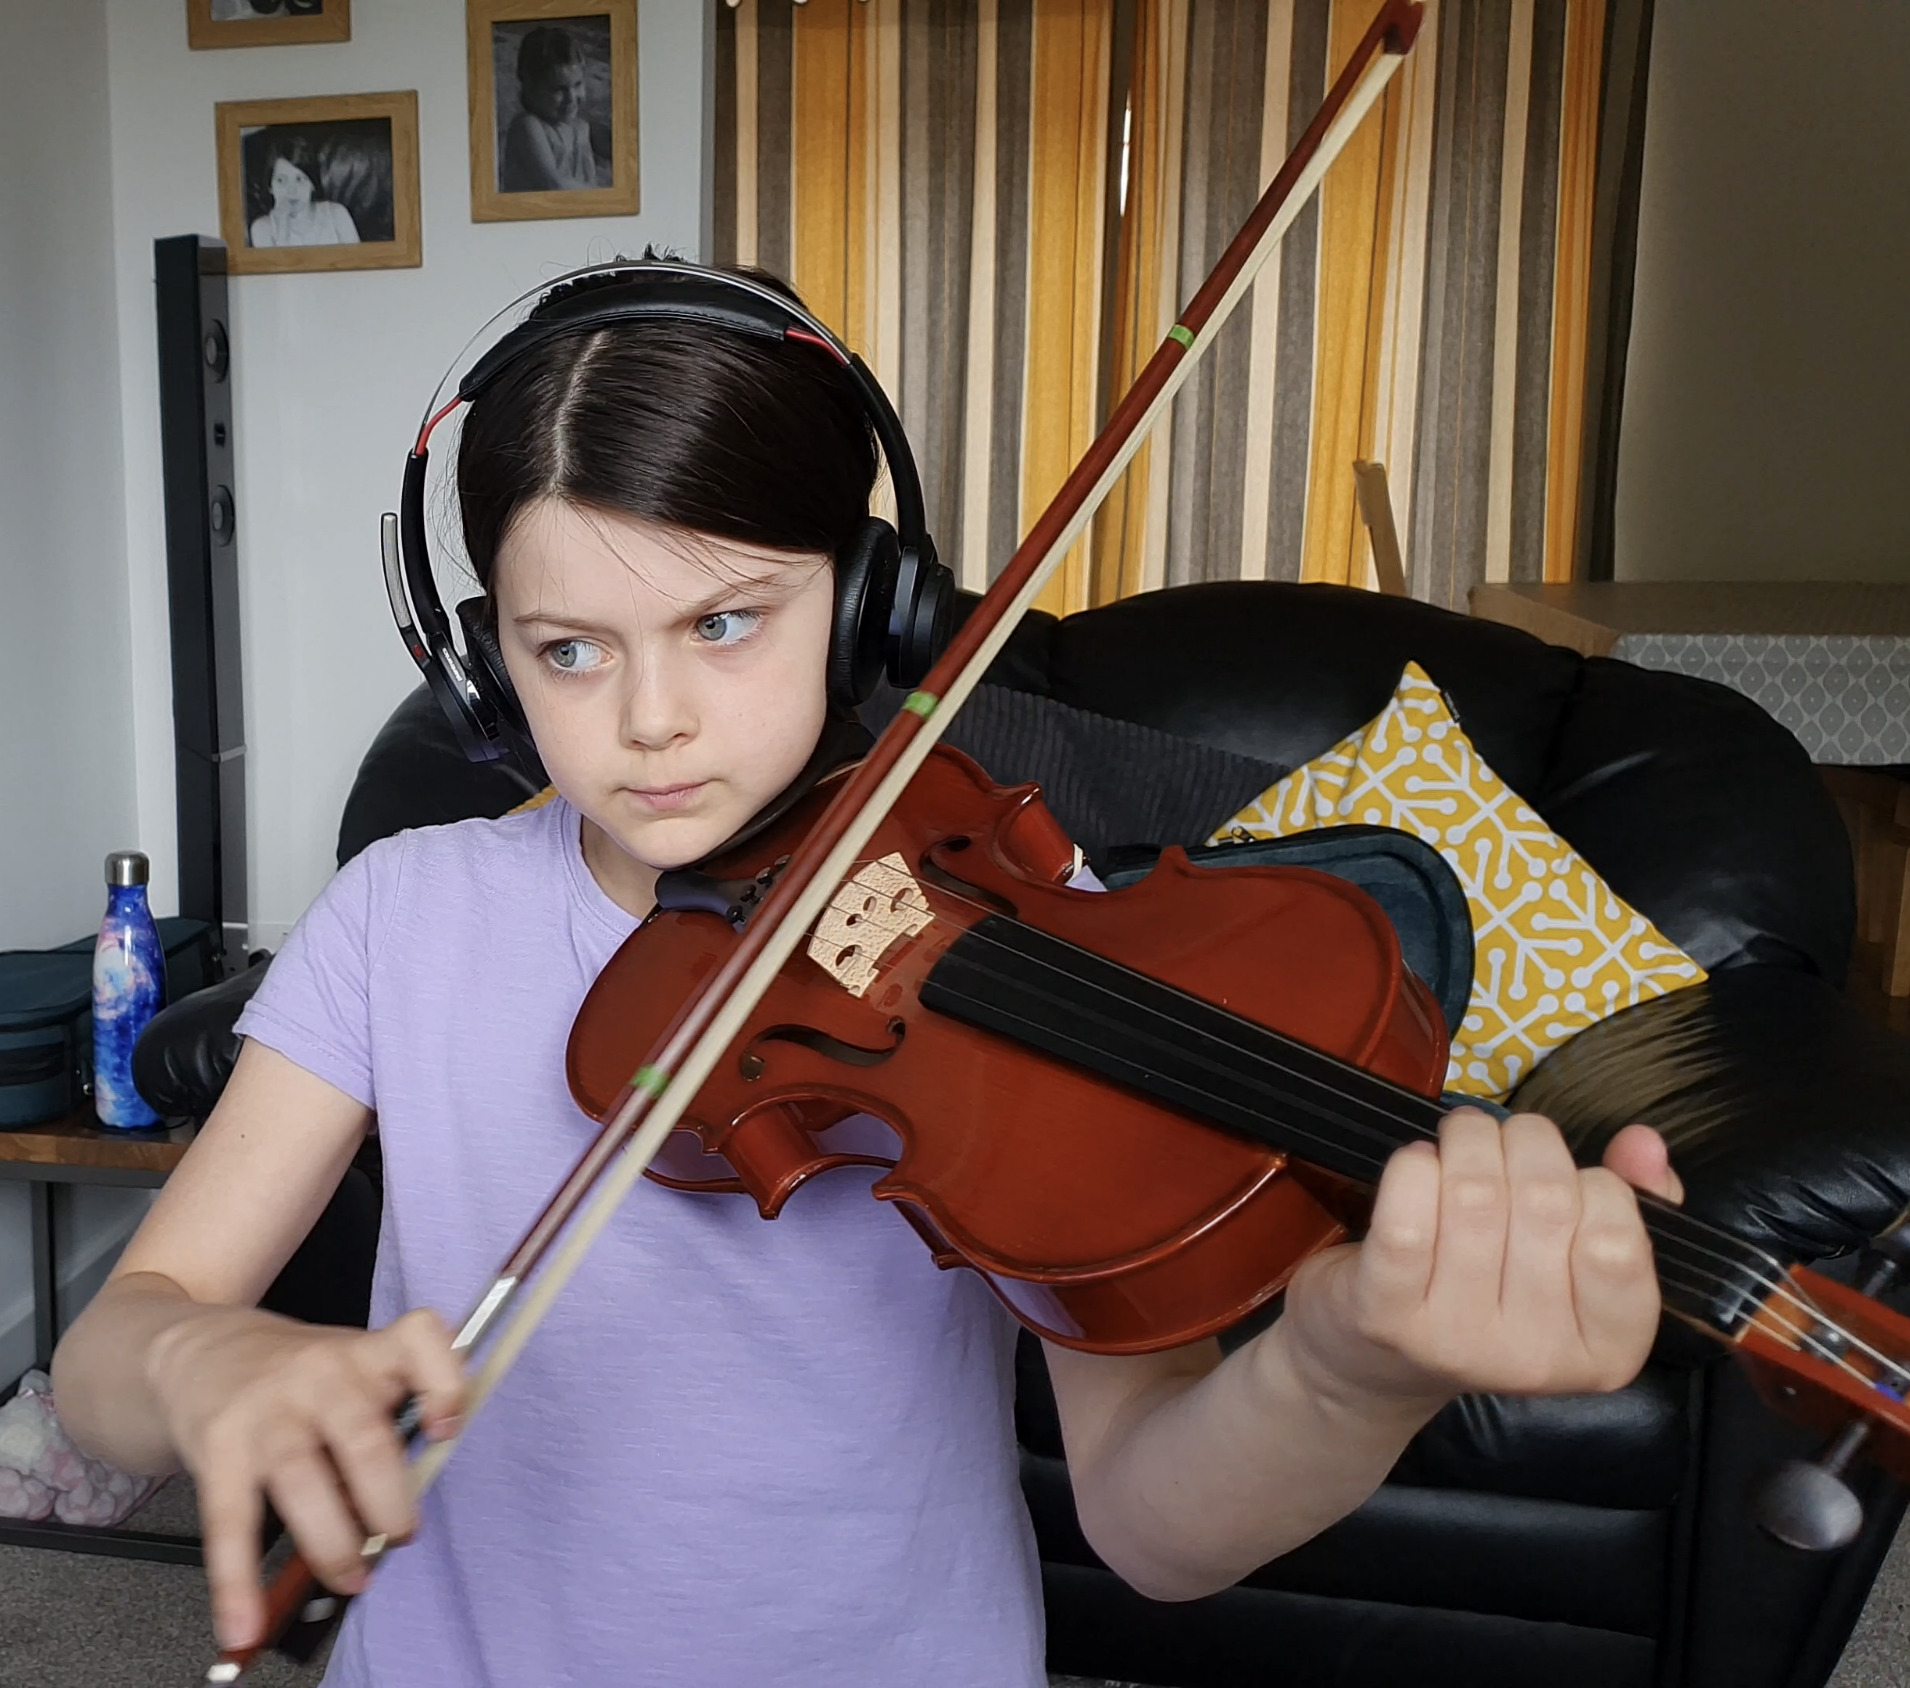 Home Schooling - participating in an online international concert